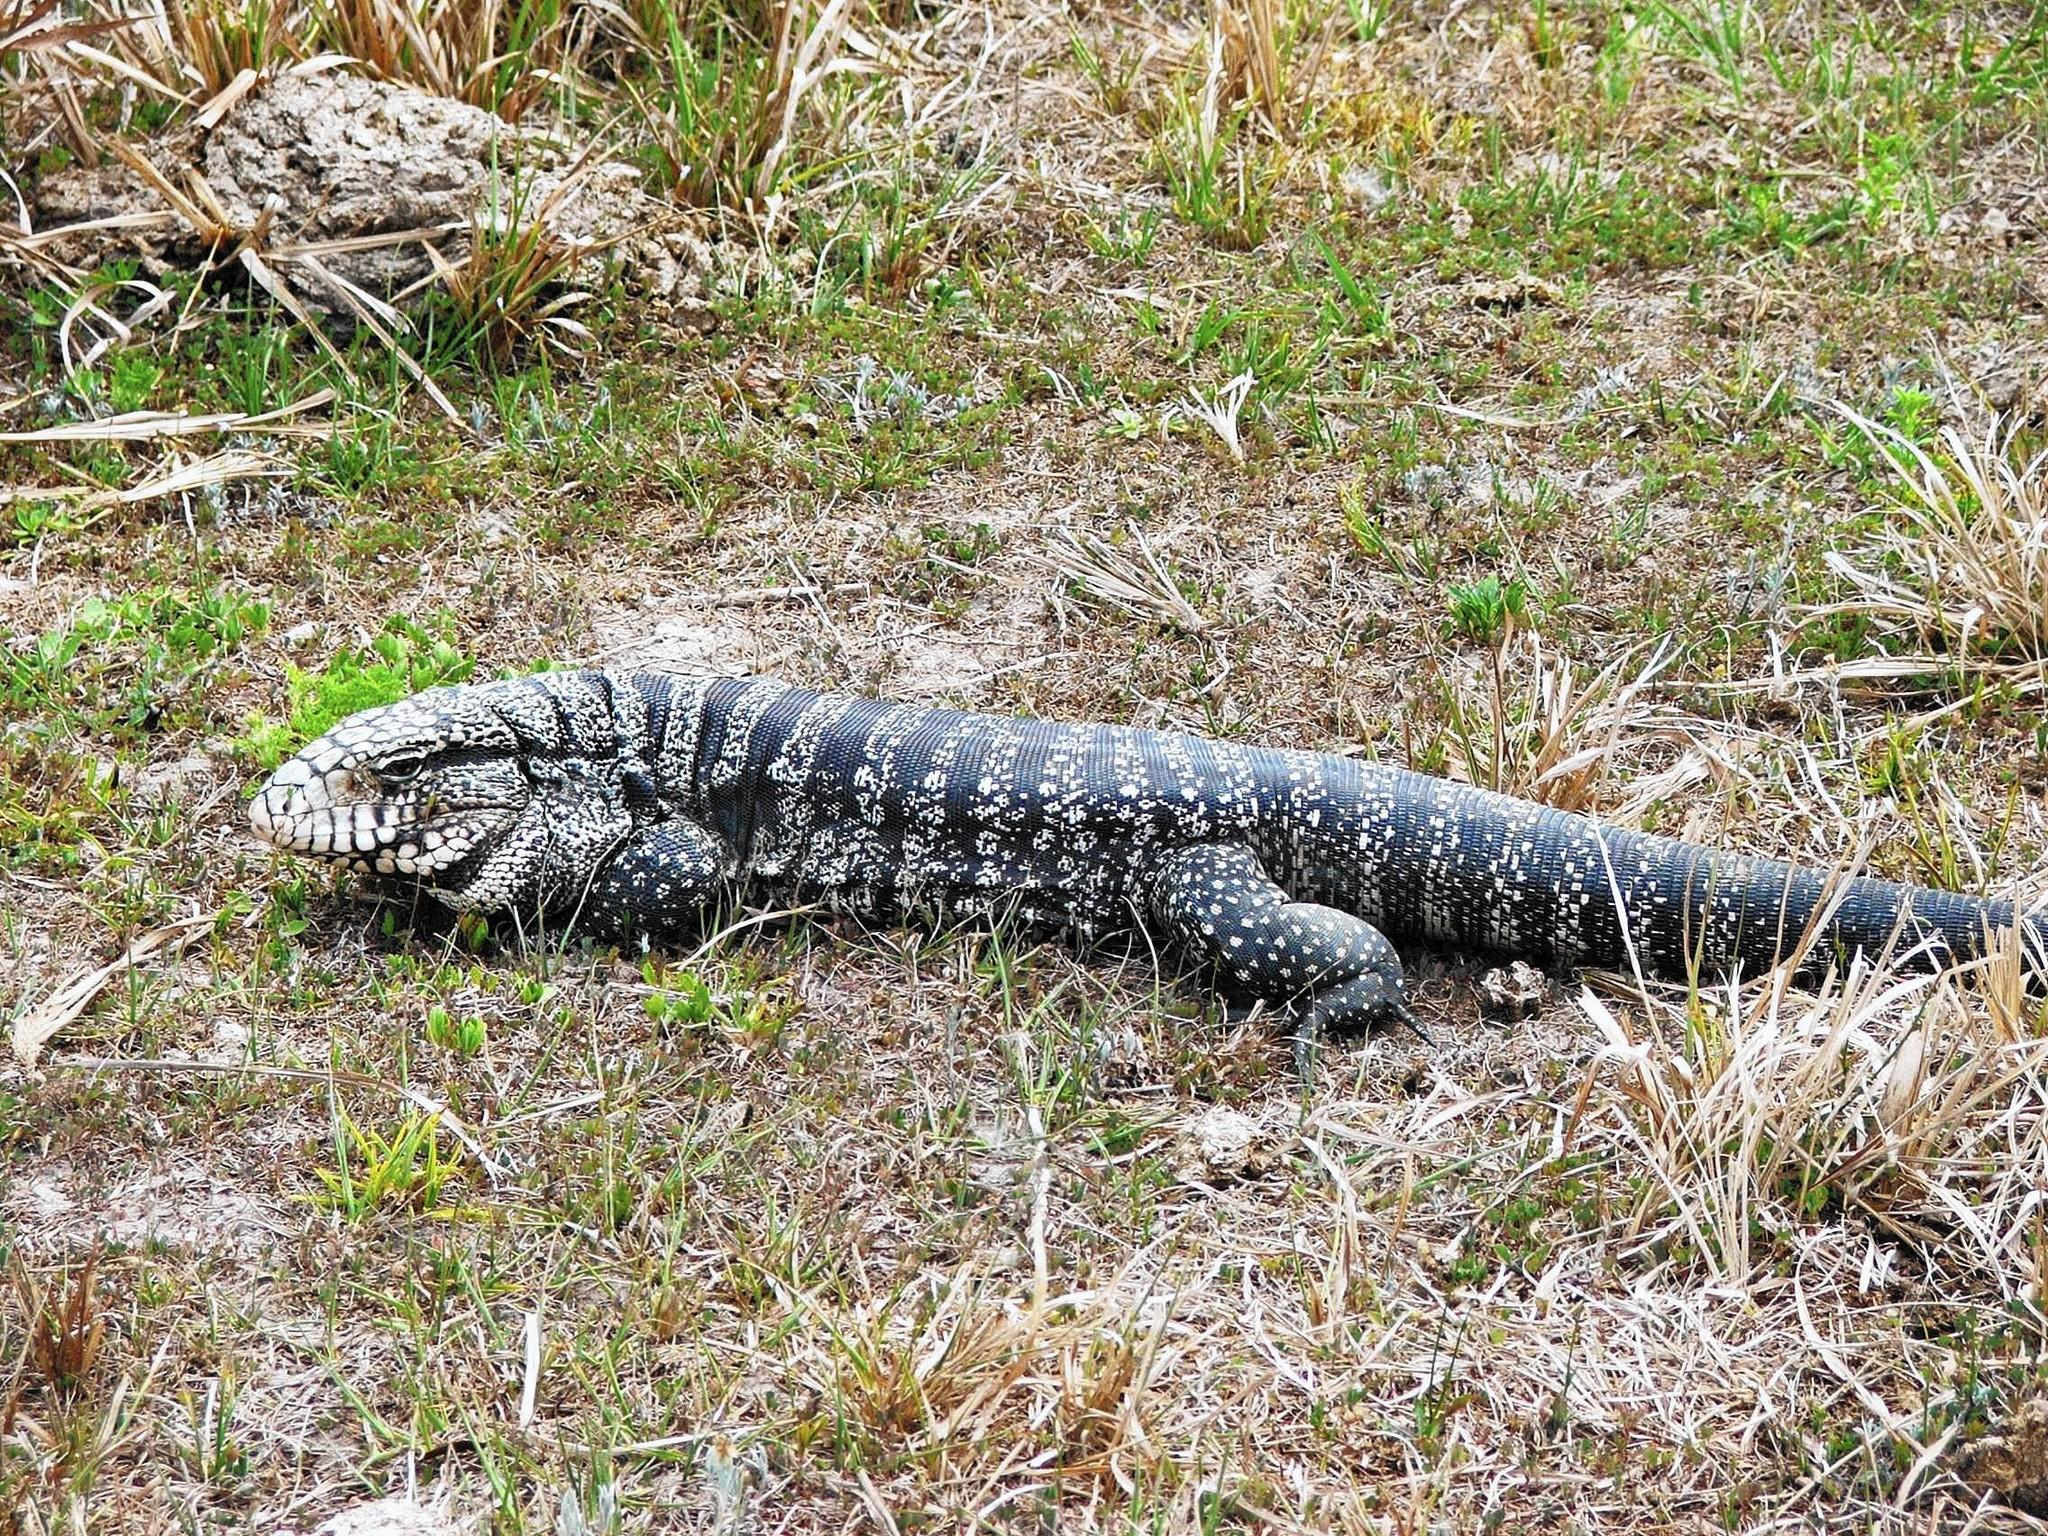 Florida is facing a tegu invasion. (Photo courtesy of Jackie Guzy, Biological Research Associates)